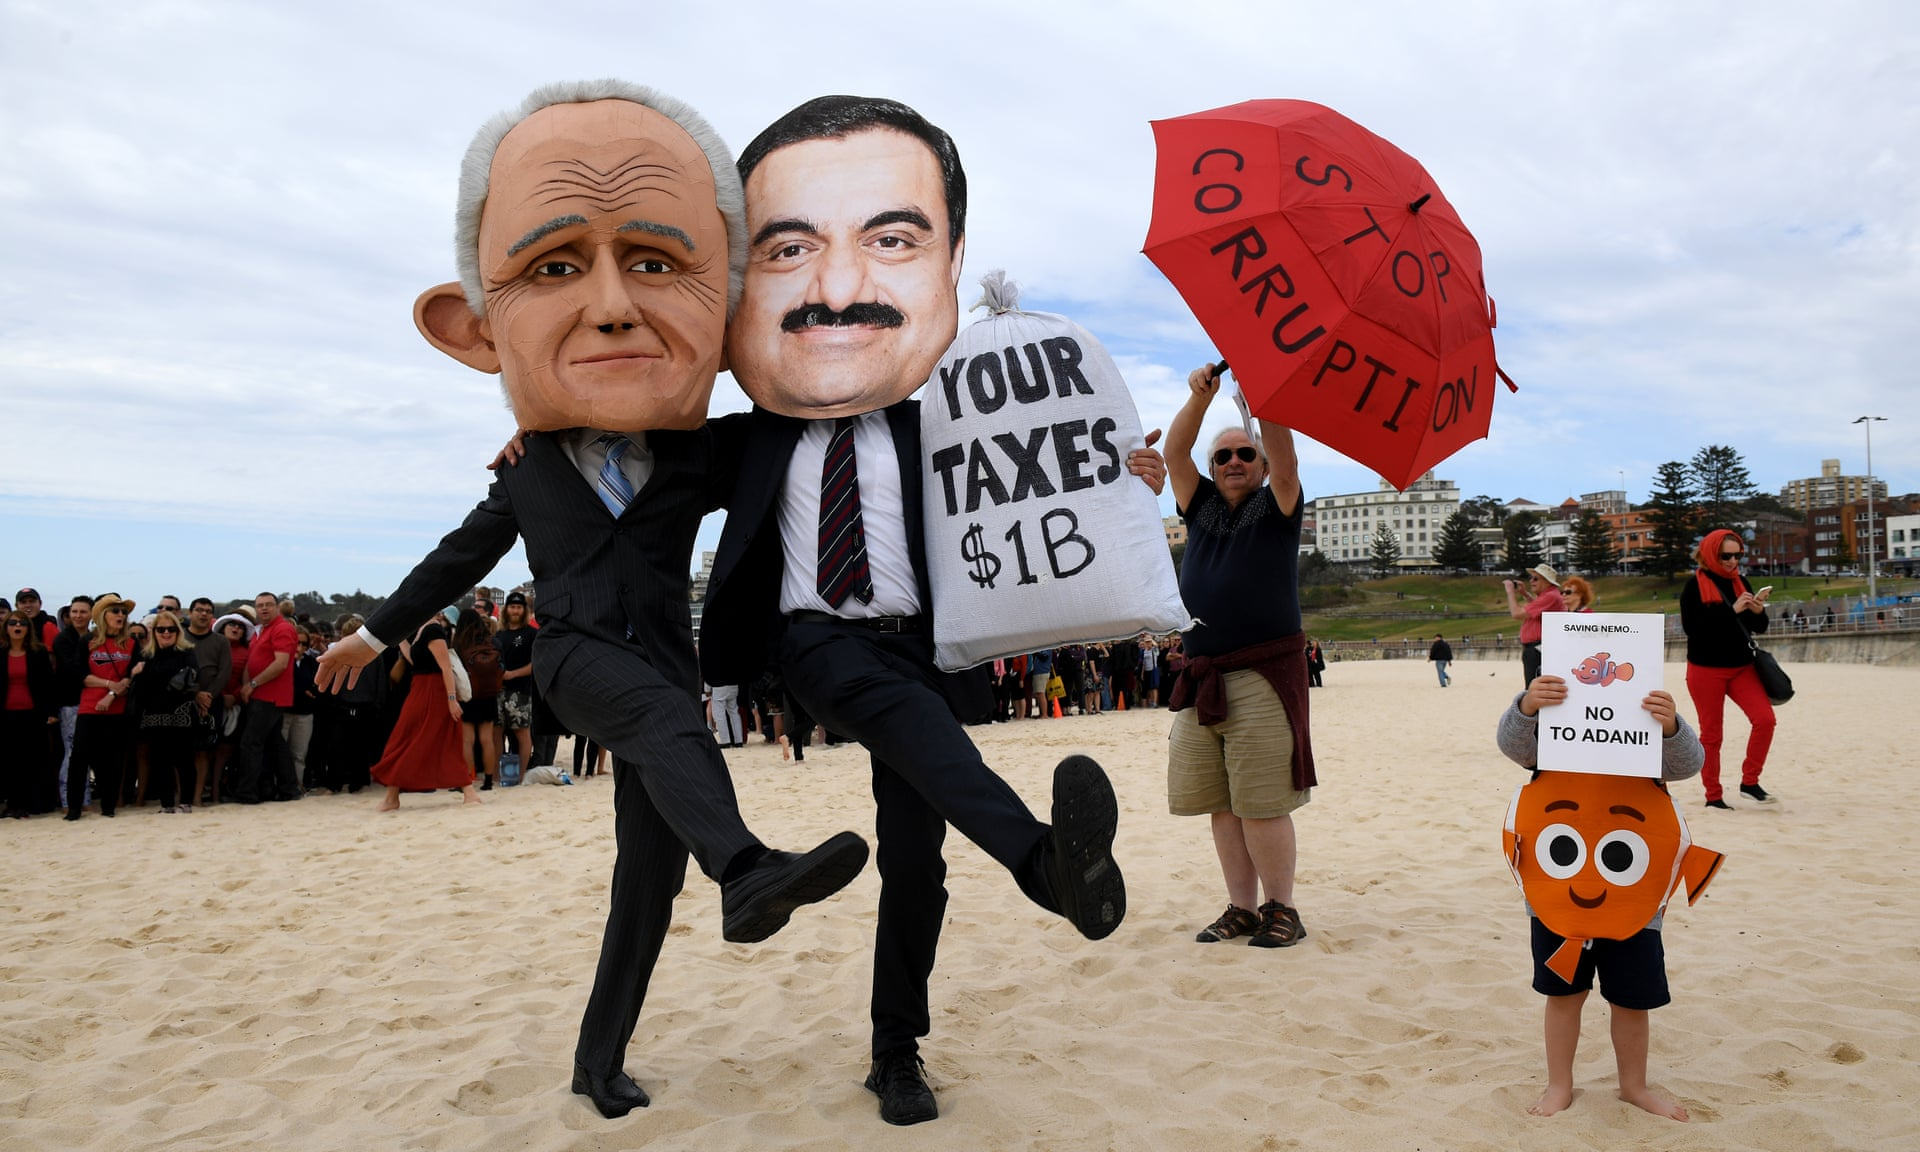 protest against adani in australia